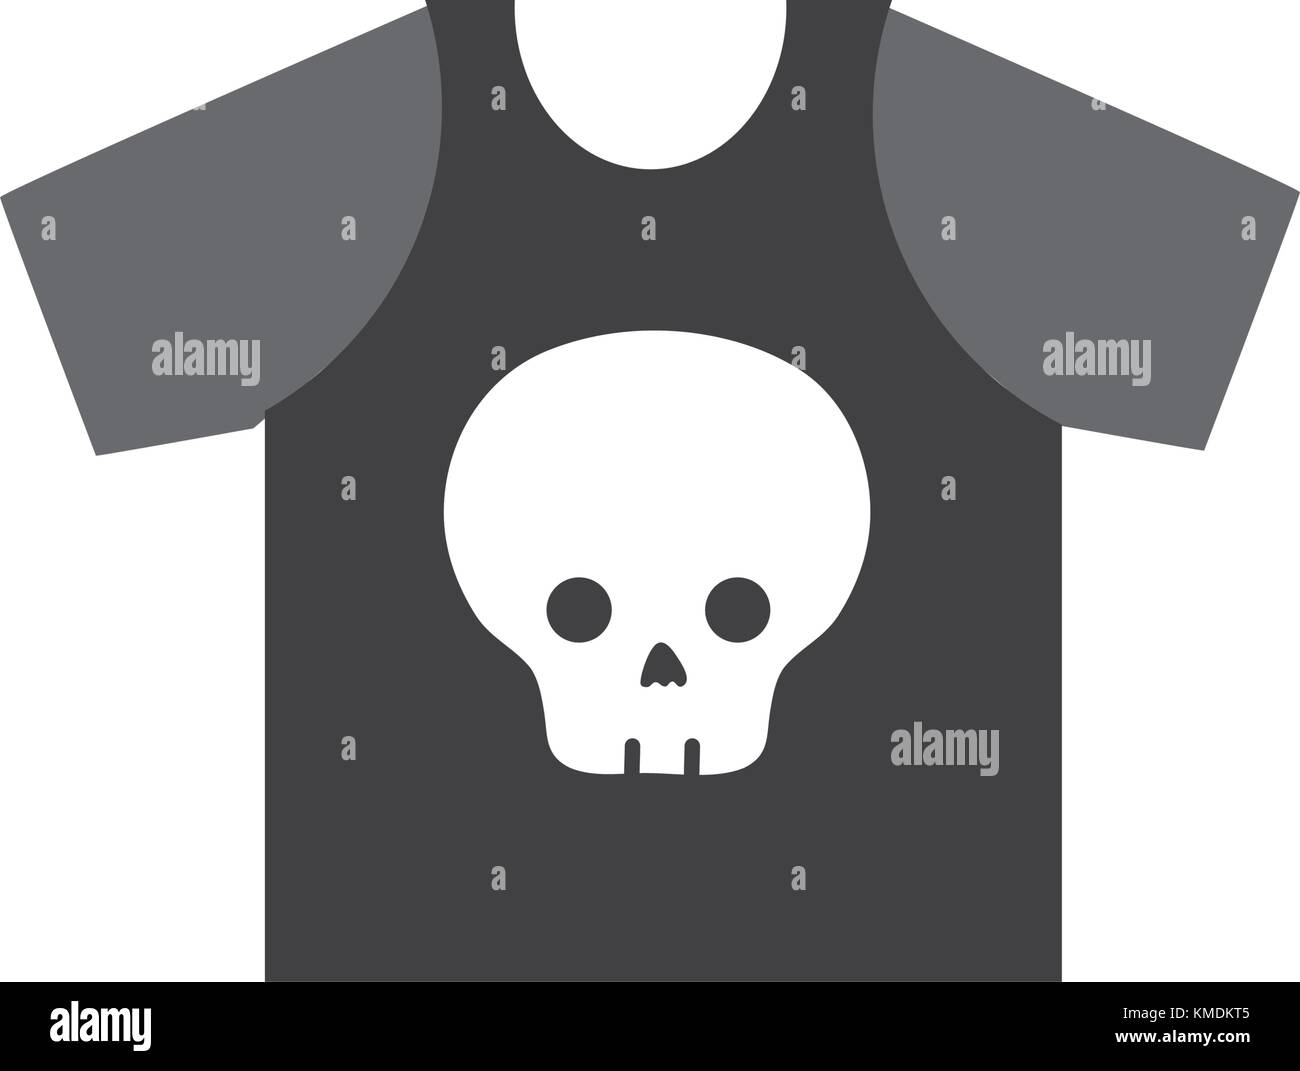 Colorful Rock T Shirt With Skull Design Casul Clothes Stock Vector